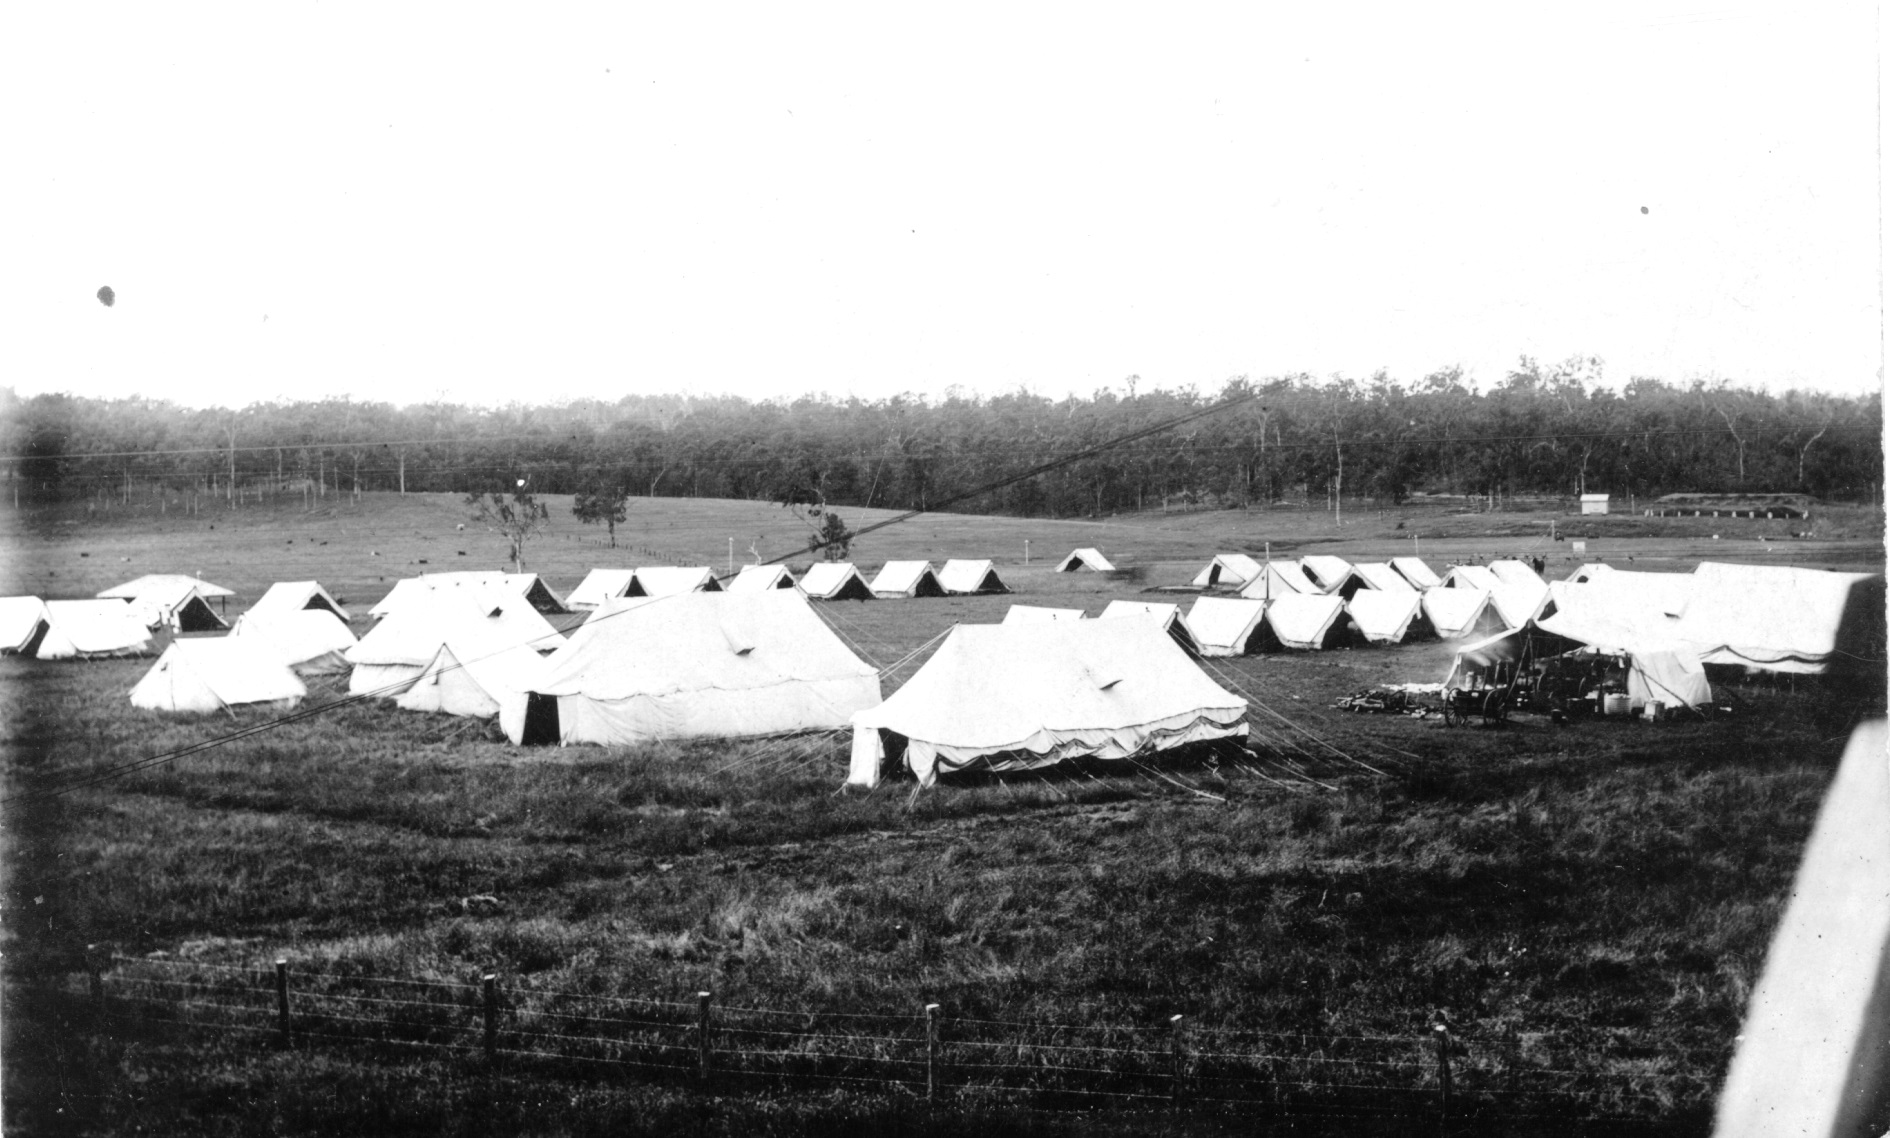 Tents up on Redbank range